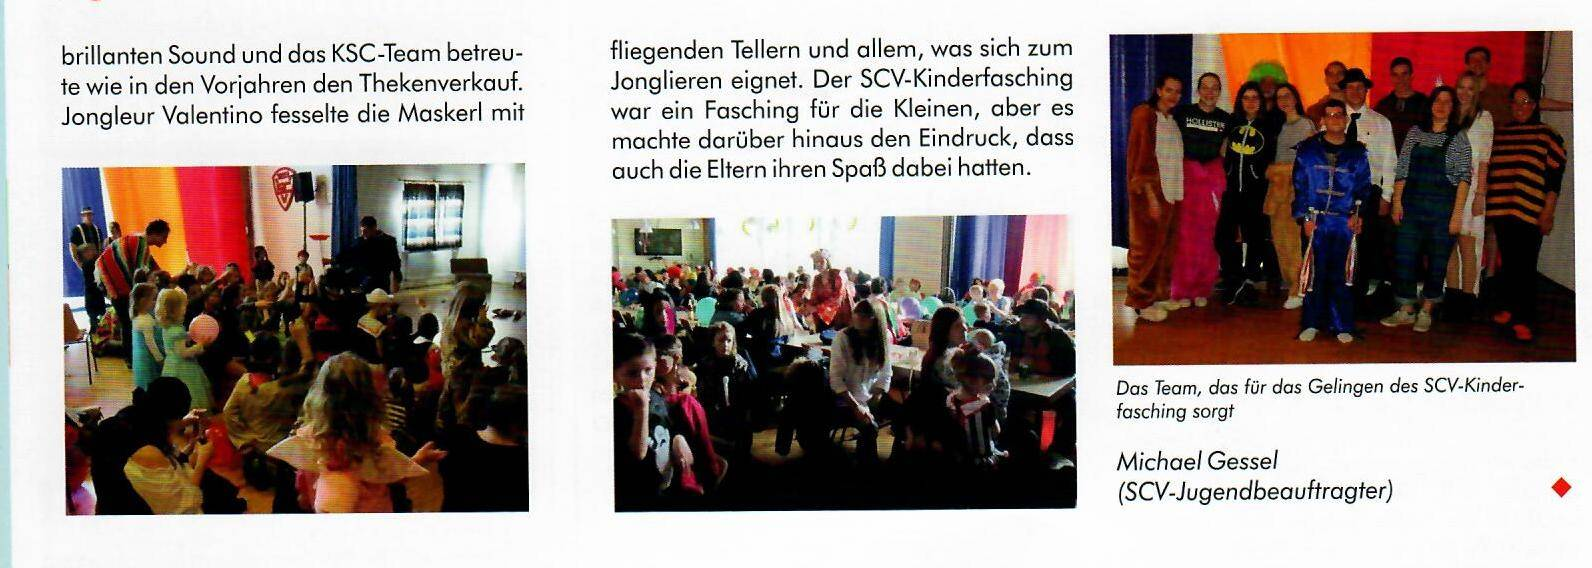 170401_SCV-Kinderfasching0002